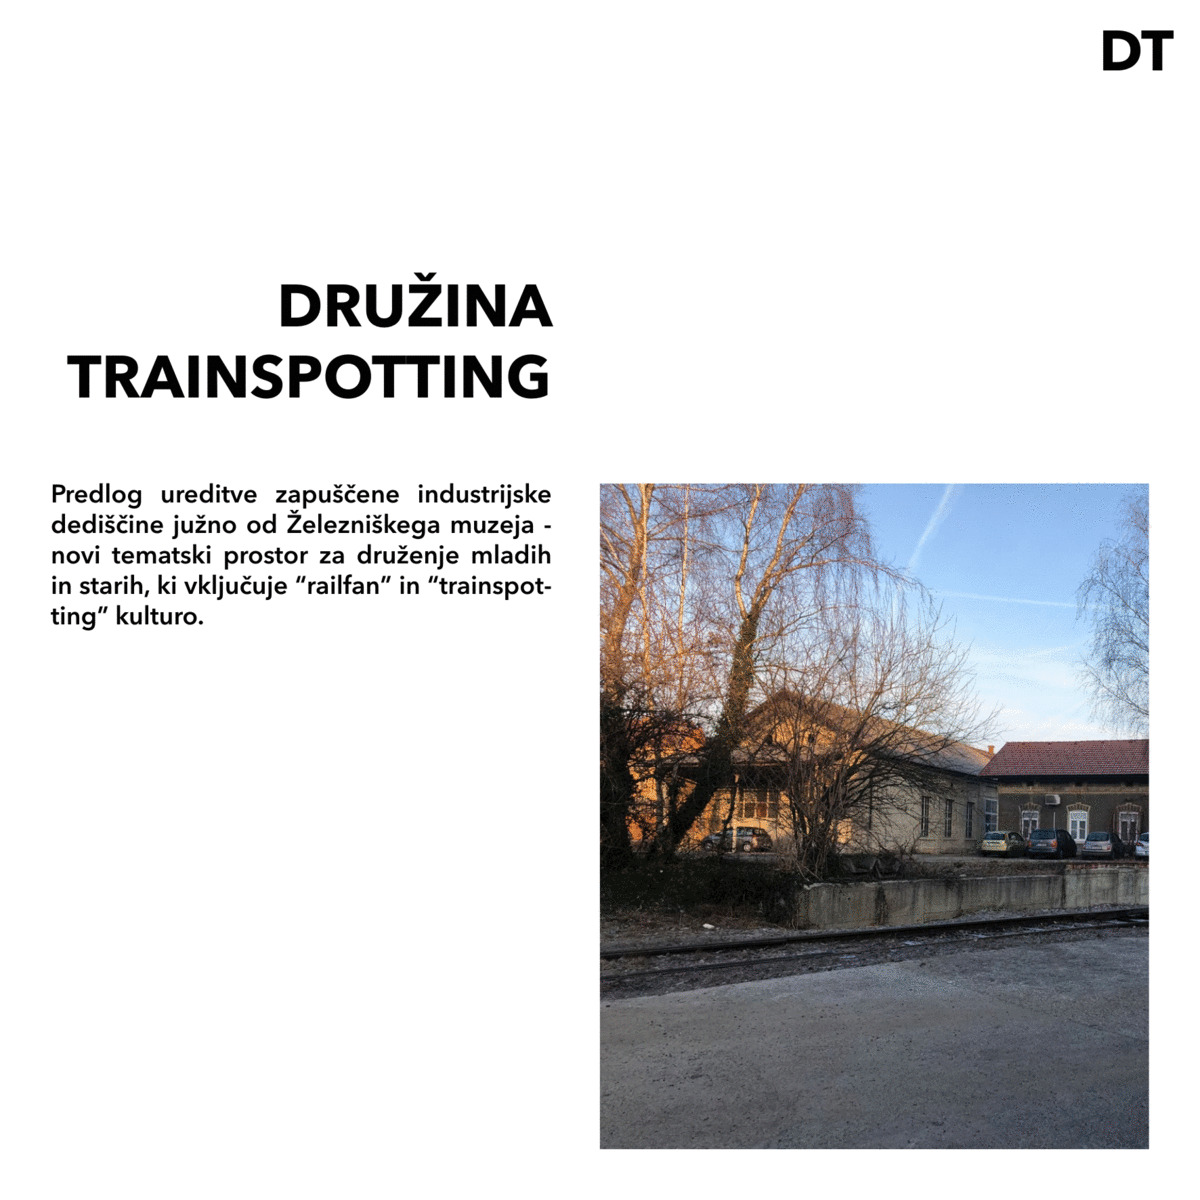 Družina trainspotting